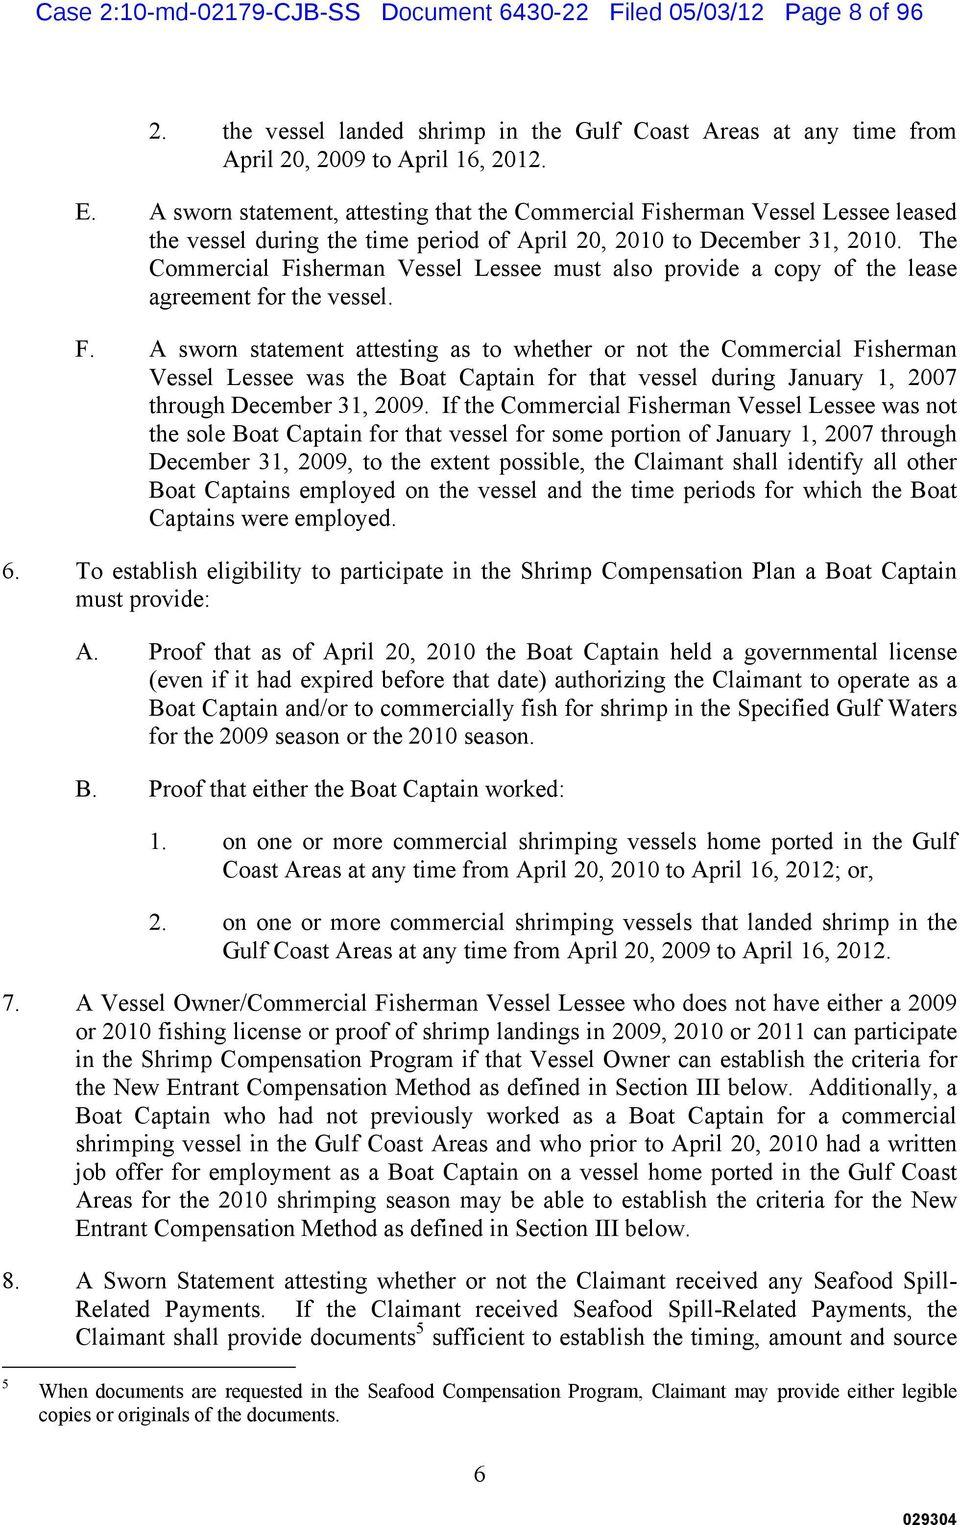 The Commercial Fisherman Vessel Lessee must also provide a copy of the lease agreement for the vessel. F. A sworn statement attesting as to whether or not the Commercial Fisherman Vessel Lessee was the Boat Captain for that vessel during January 1, 2007 through December 31, 2009.